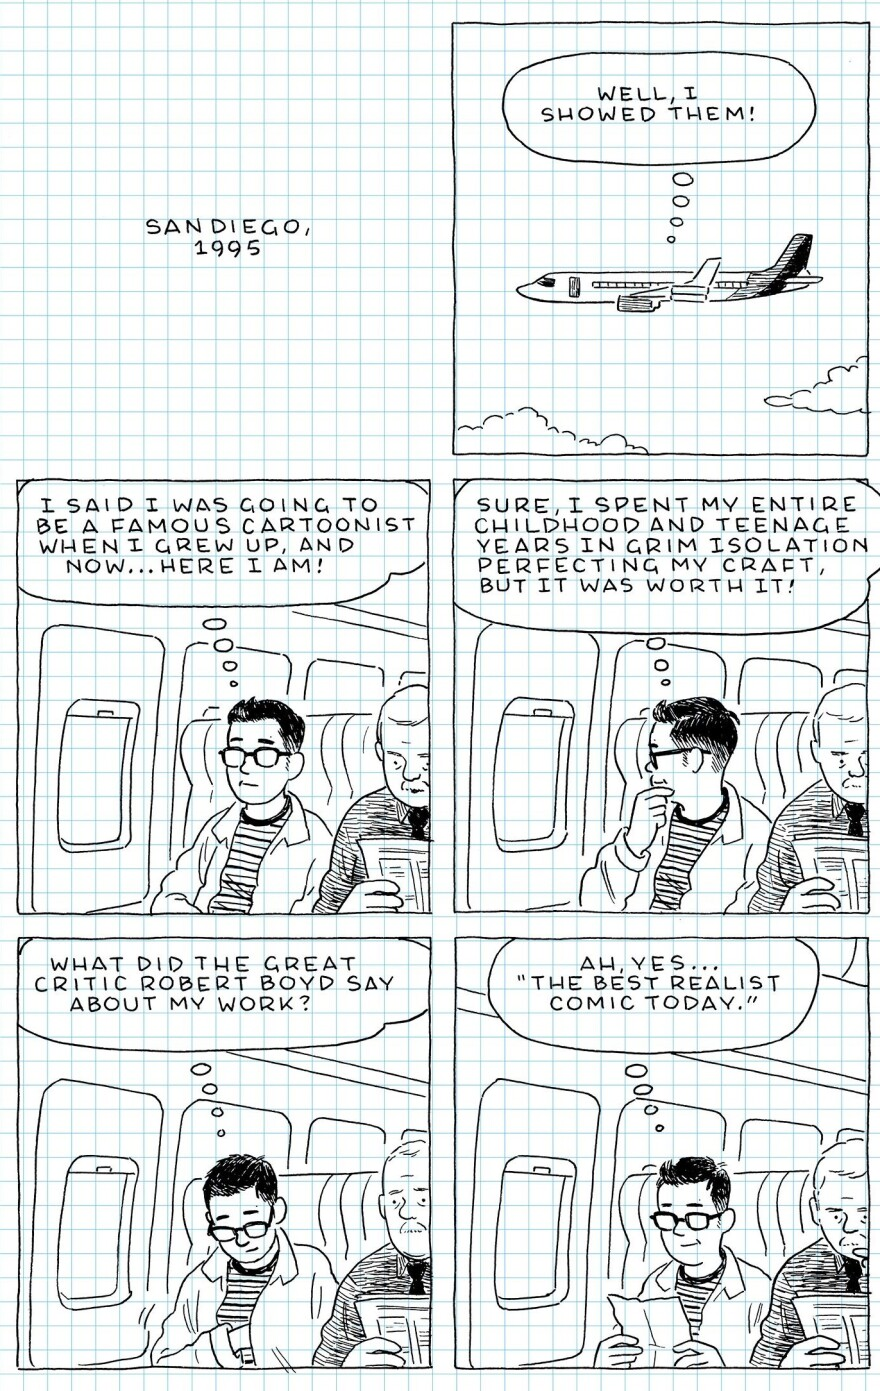 From <em>The Loneliness of the Long-Distance Cartoonist</em> by Adrian Tomine